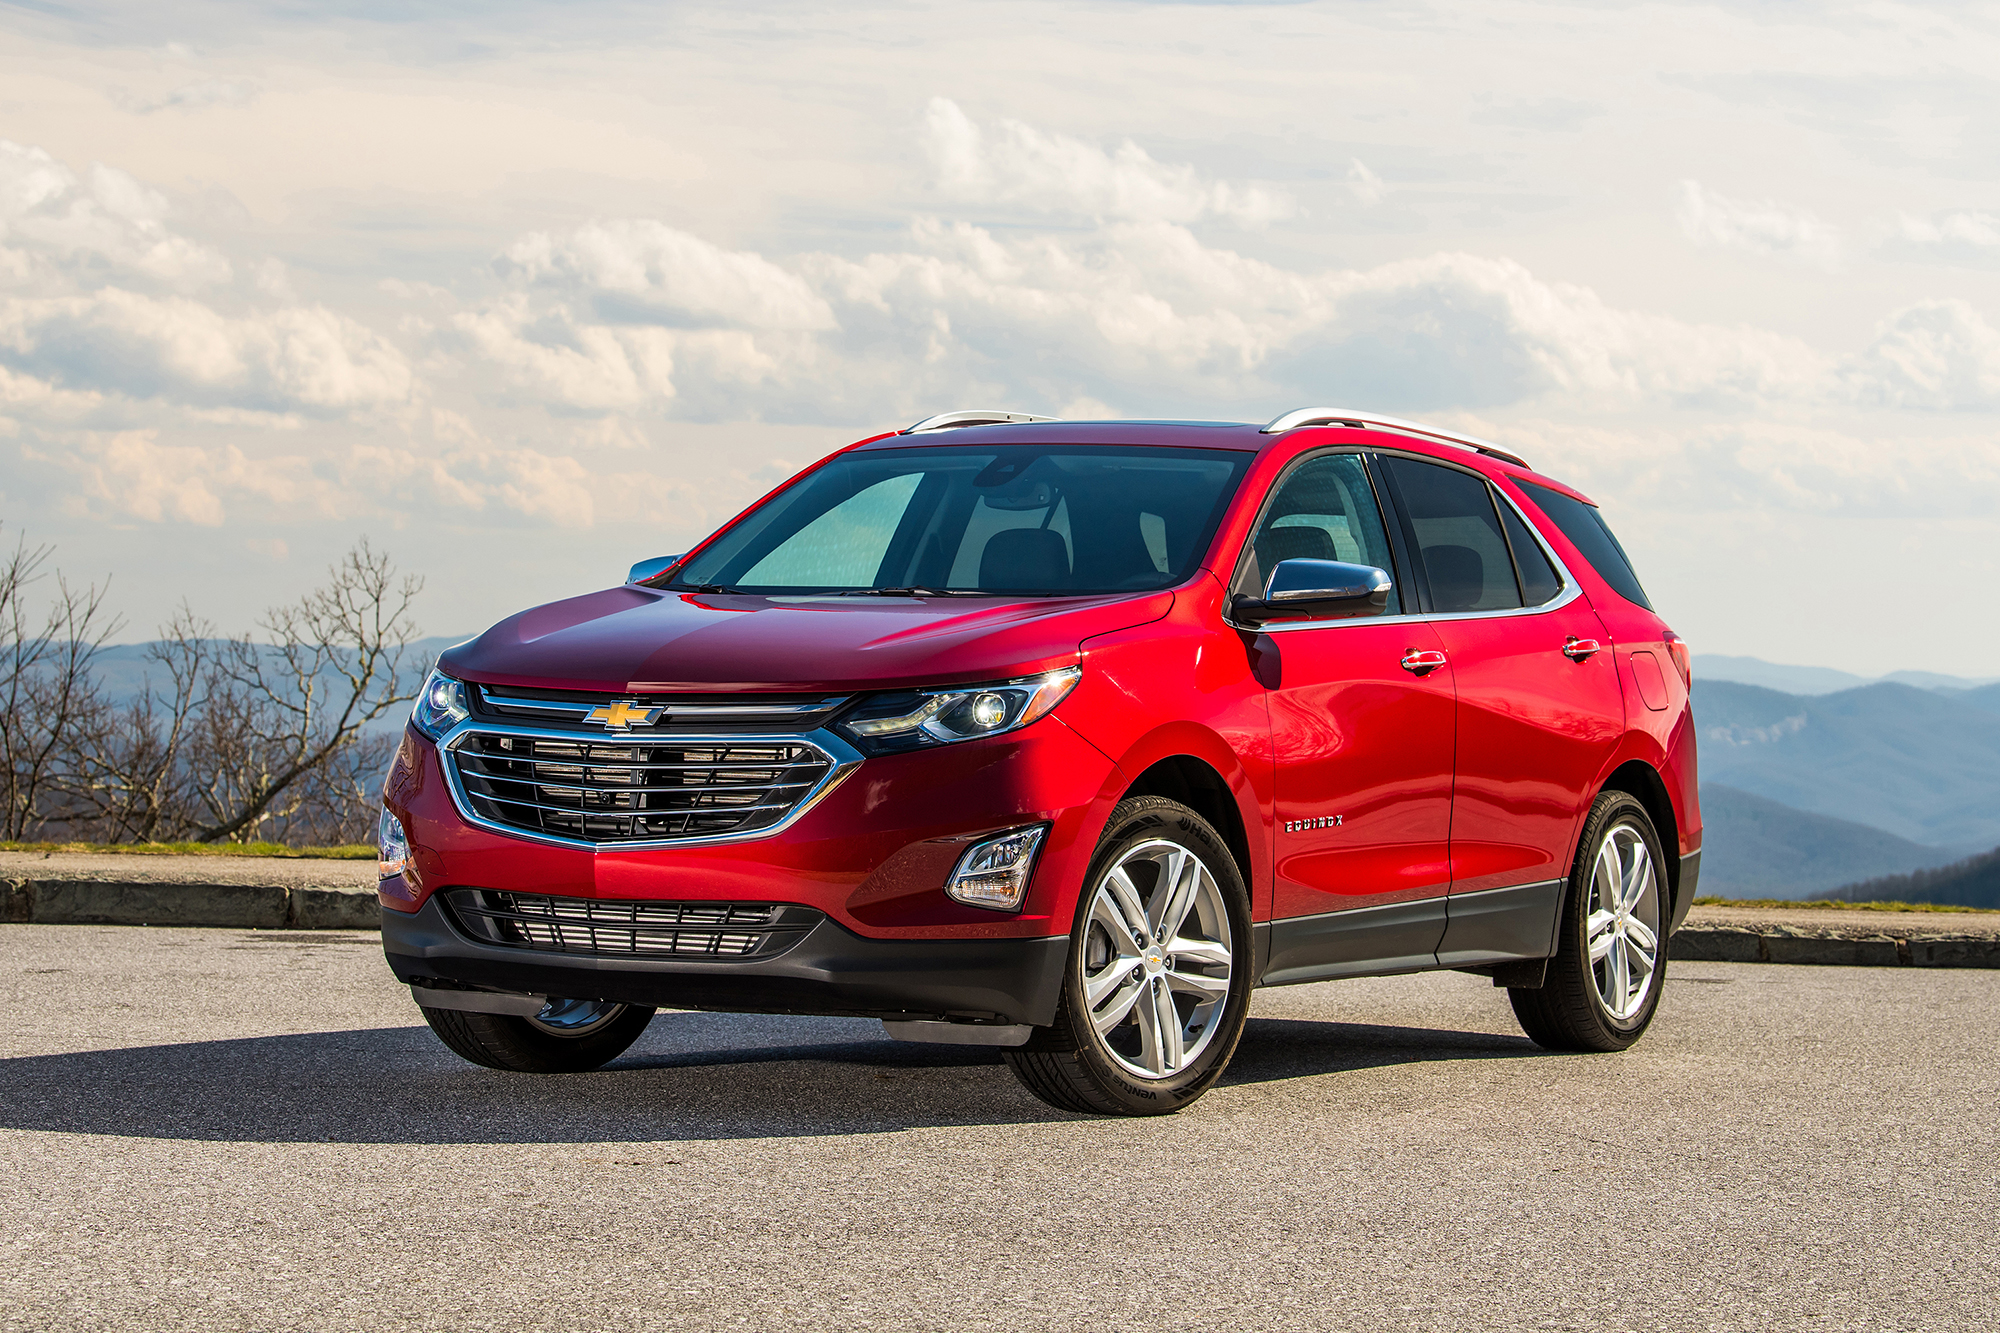 2020 Chevrolet Equinox Ups Its Safety Award Count